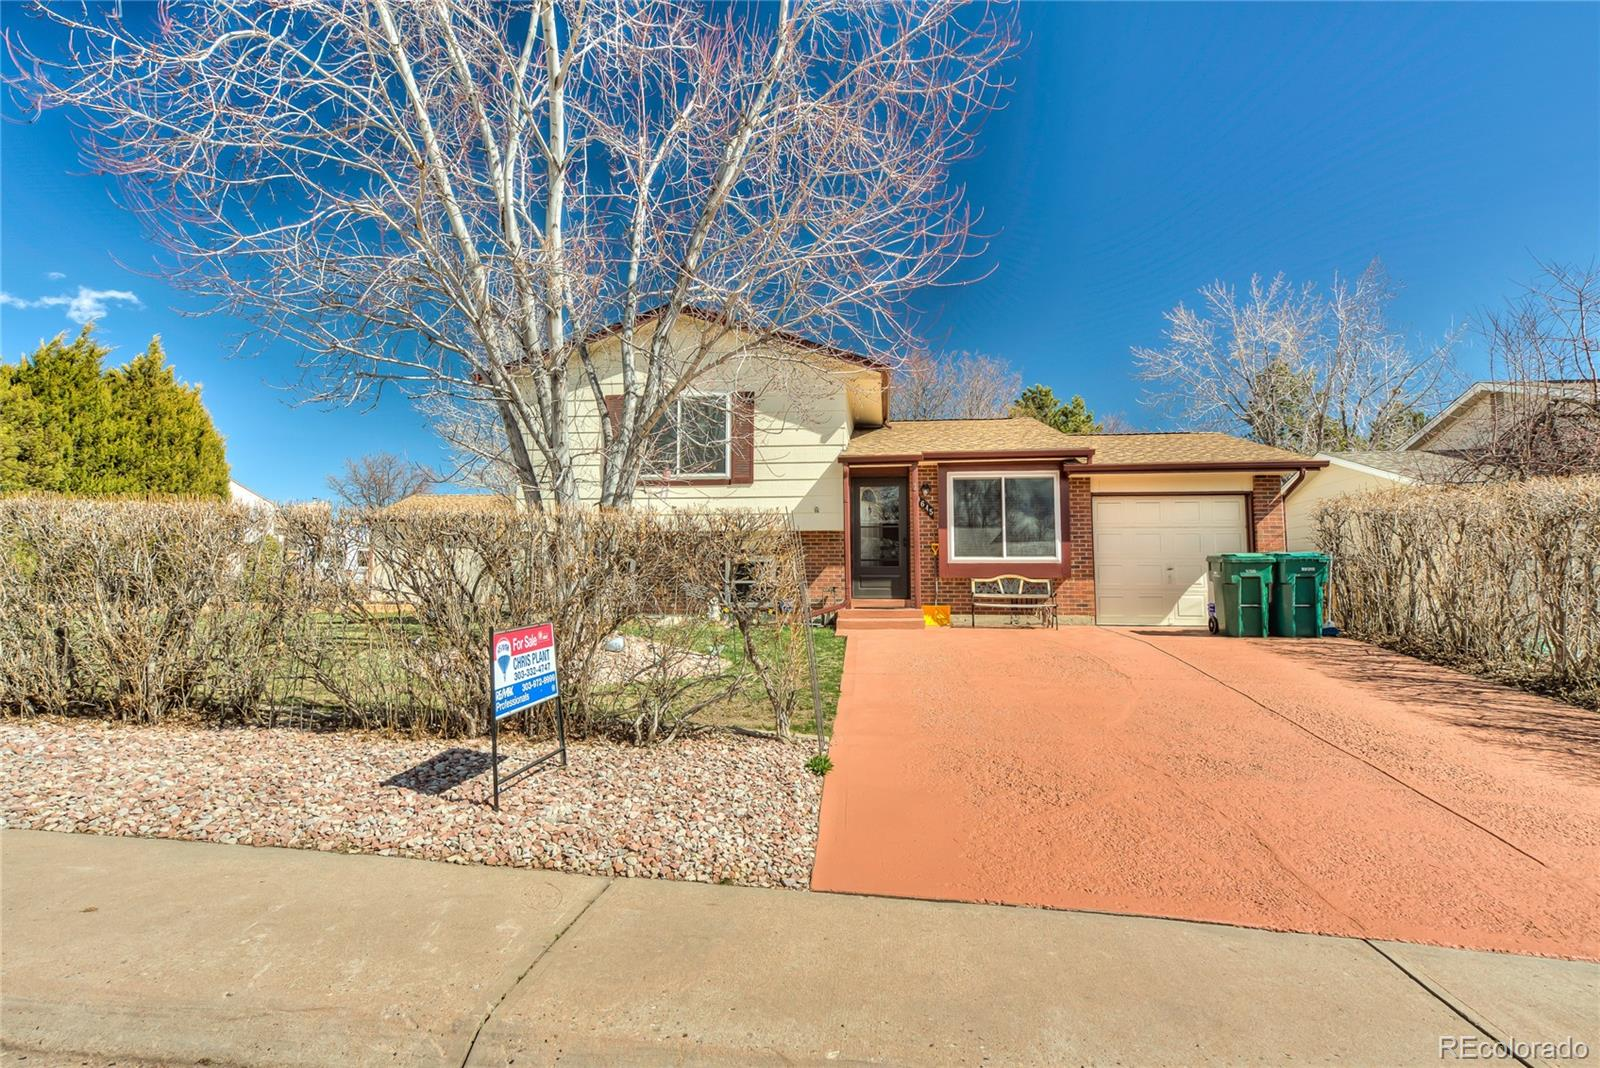 MLS# 2811379 - 1 - 9645 W David Avenue, Littleton, CO 80128